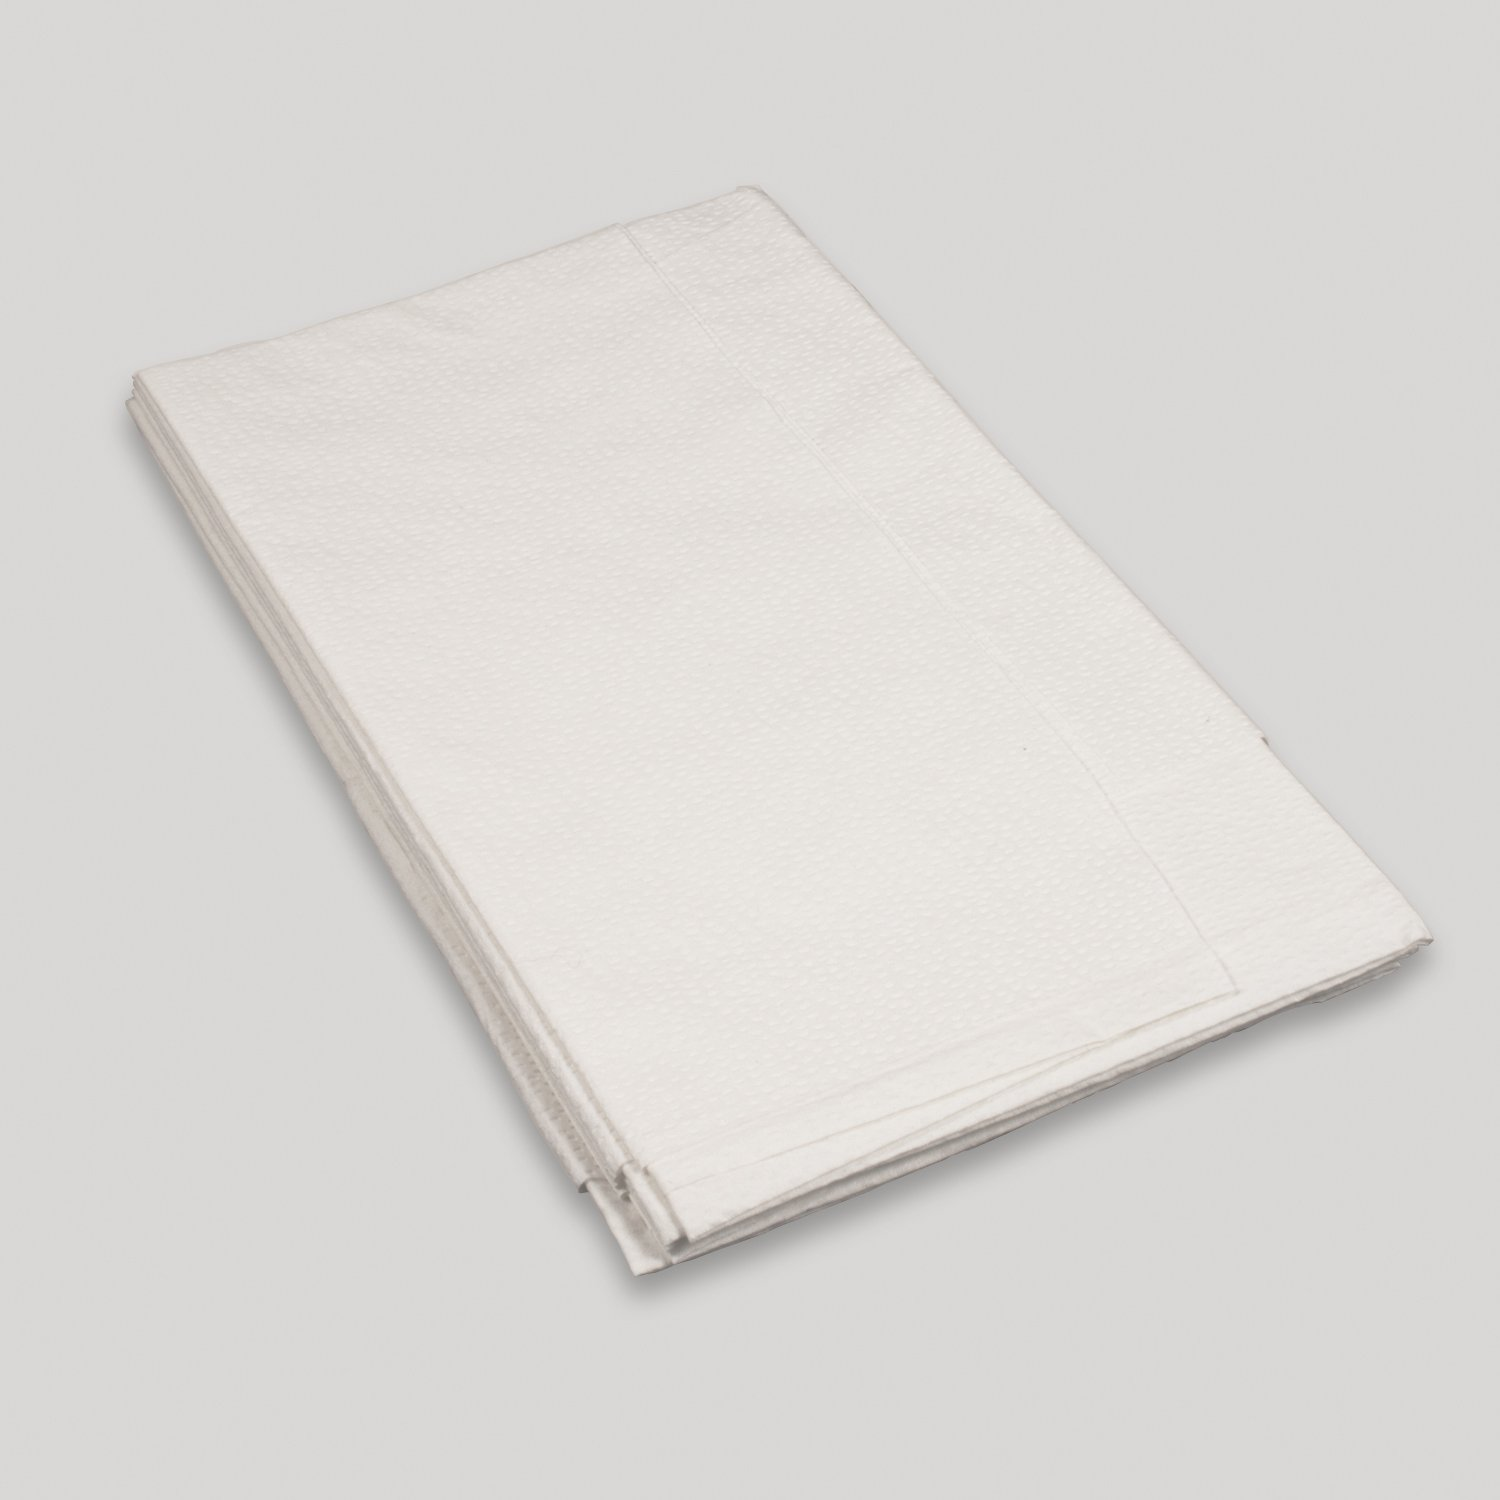 Dynarex Drape Sheet, White, Latex Free, 40 Inch X 60 Inch, 100 Count